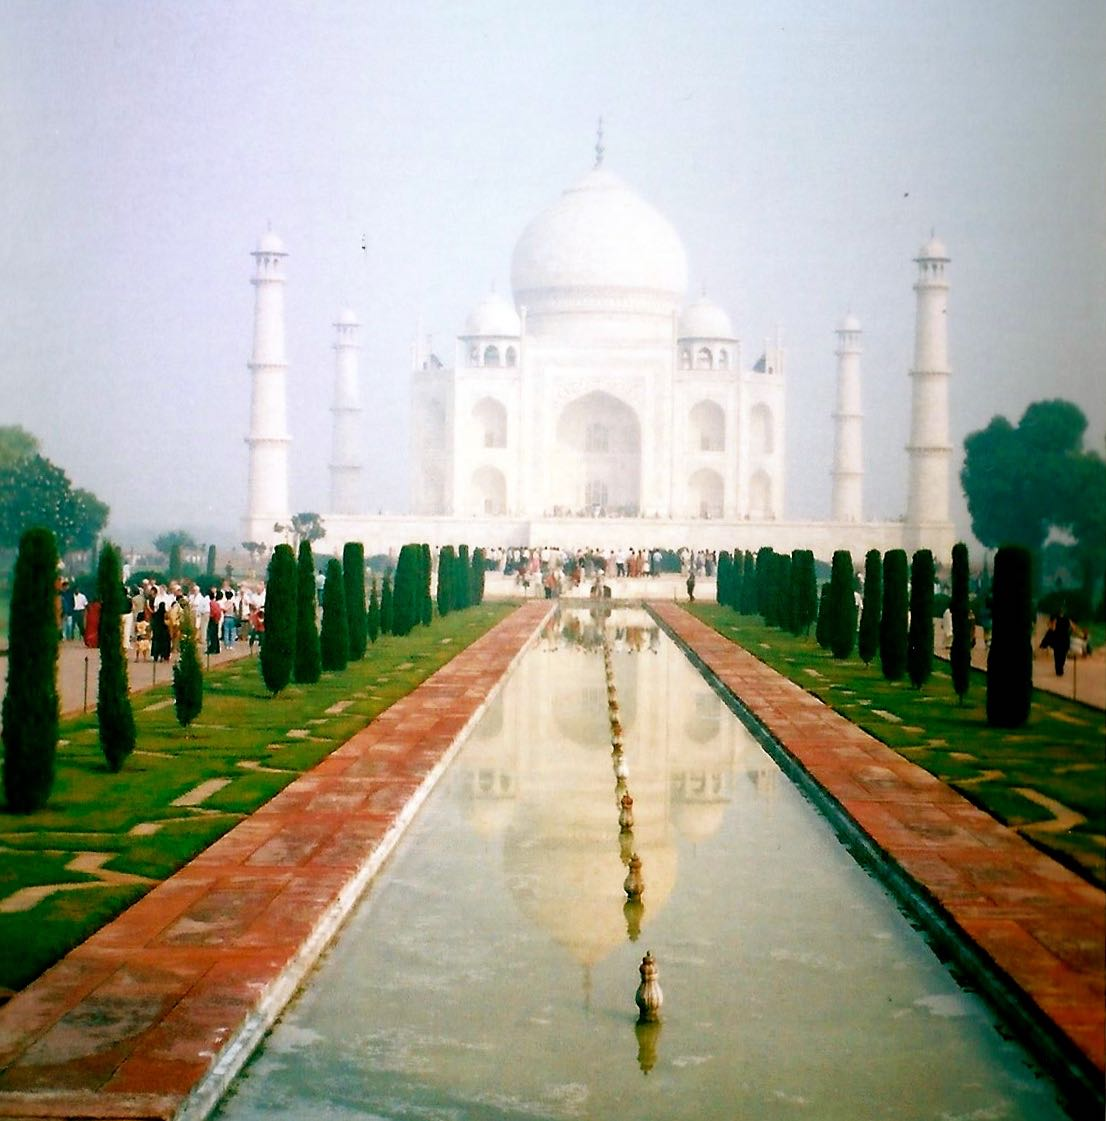 THE CLASSIC VIEW OF THE TAJ MAHAL